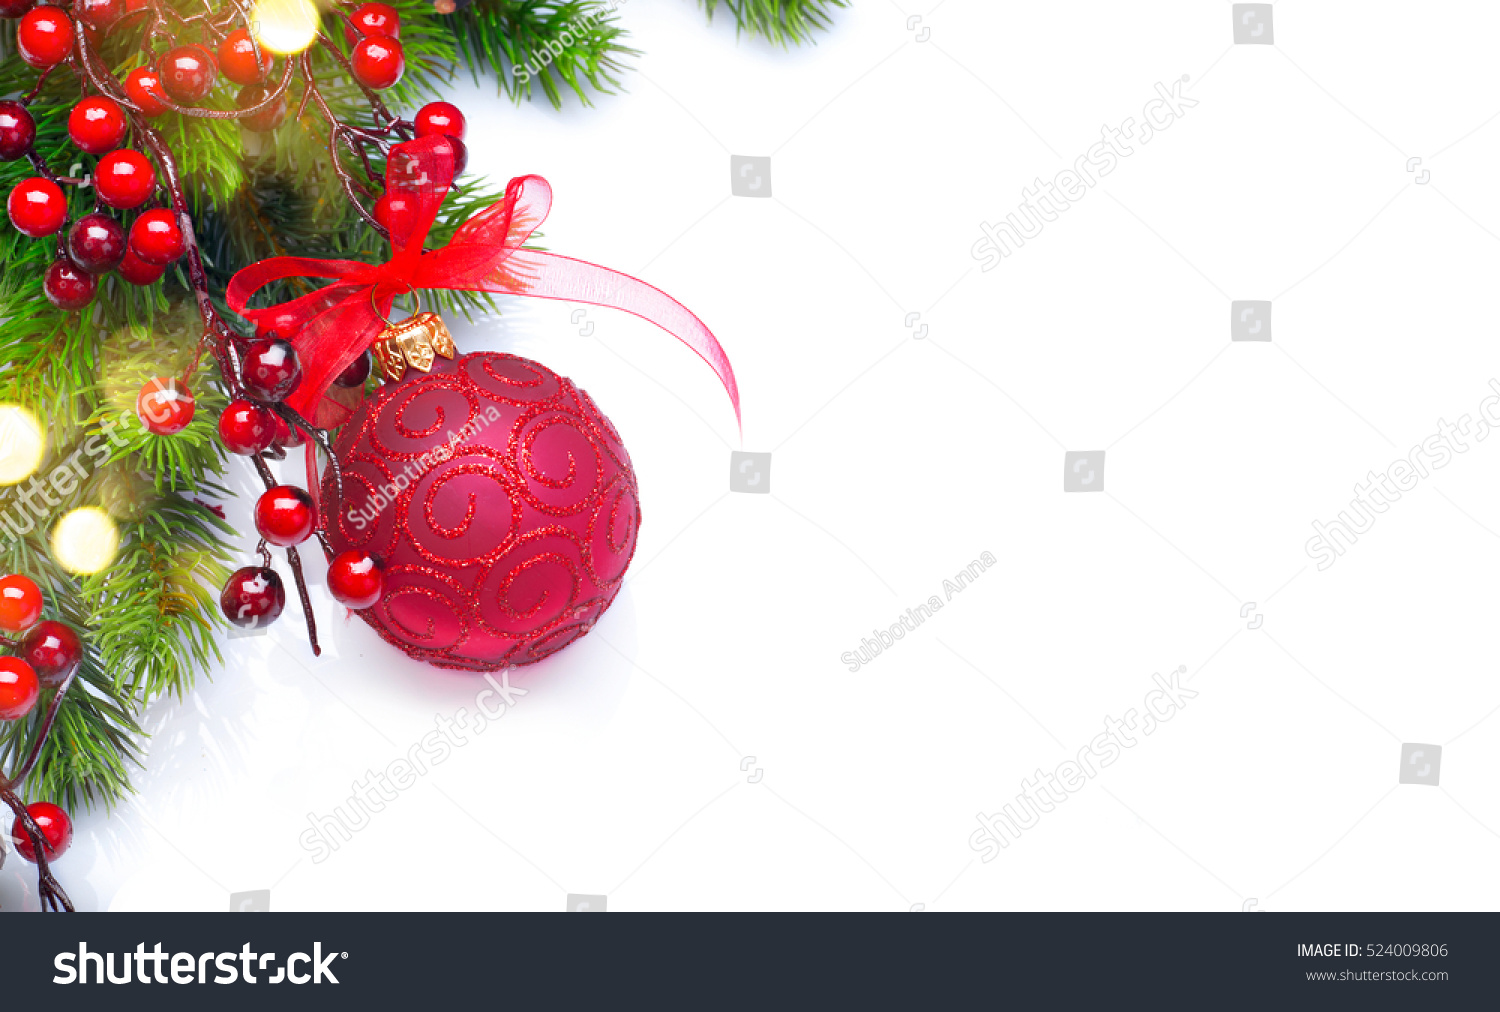 red christmas and new year decoration isolated on white background border art design with holiday